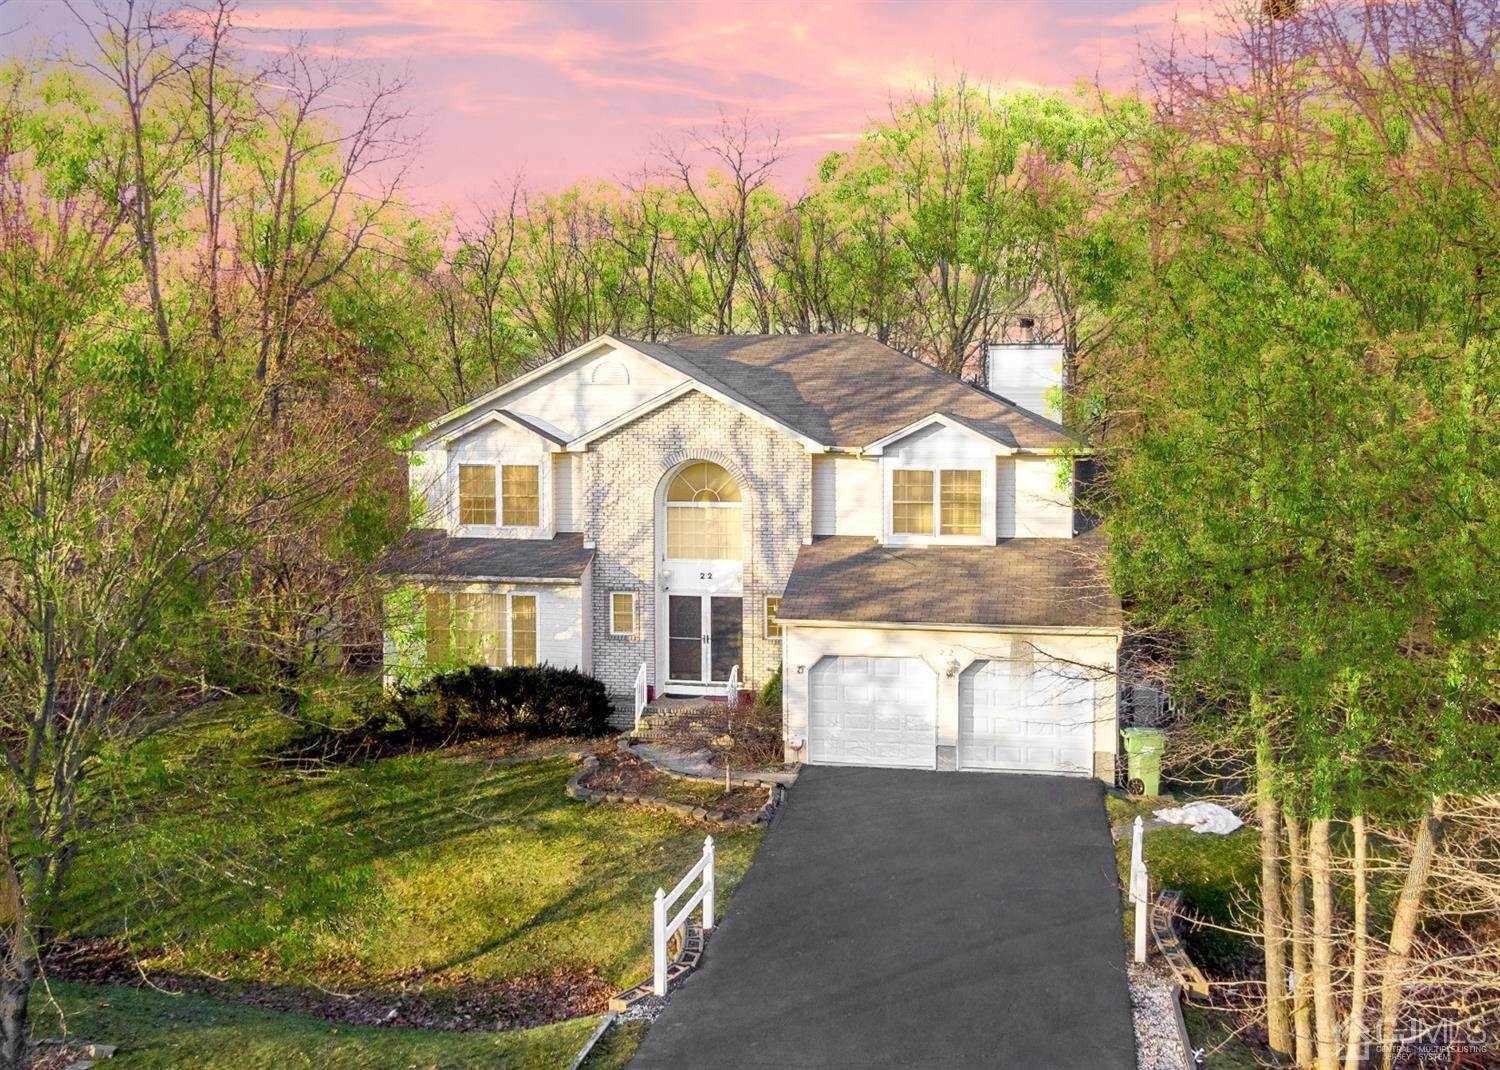 Single Family Home for Sale at 22 Battista Court Sayreville, New Jersey, 08872 United States